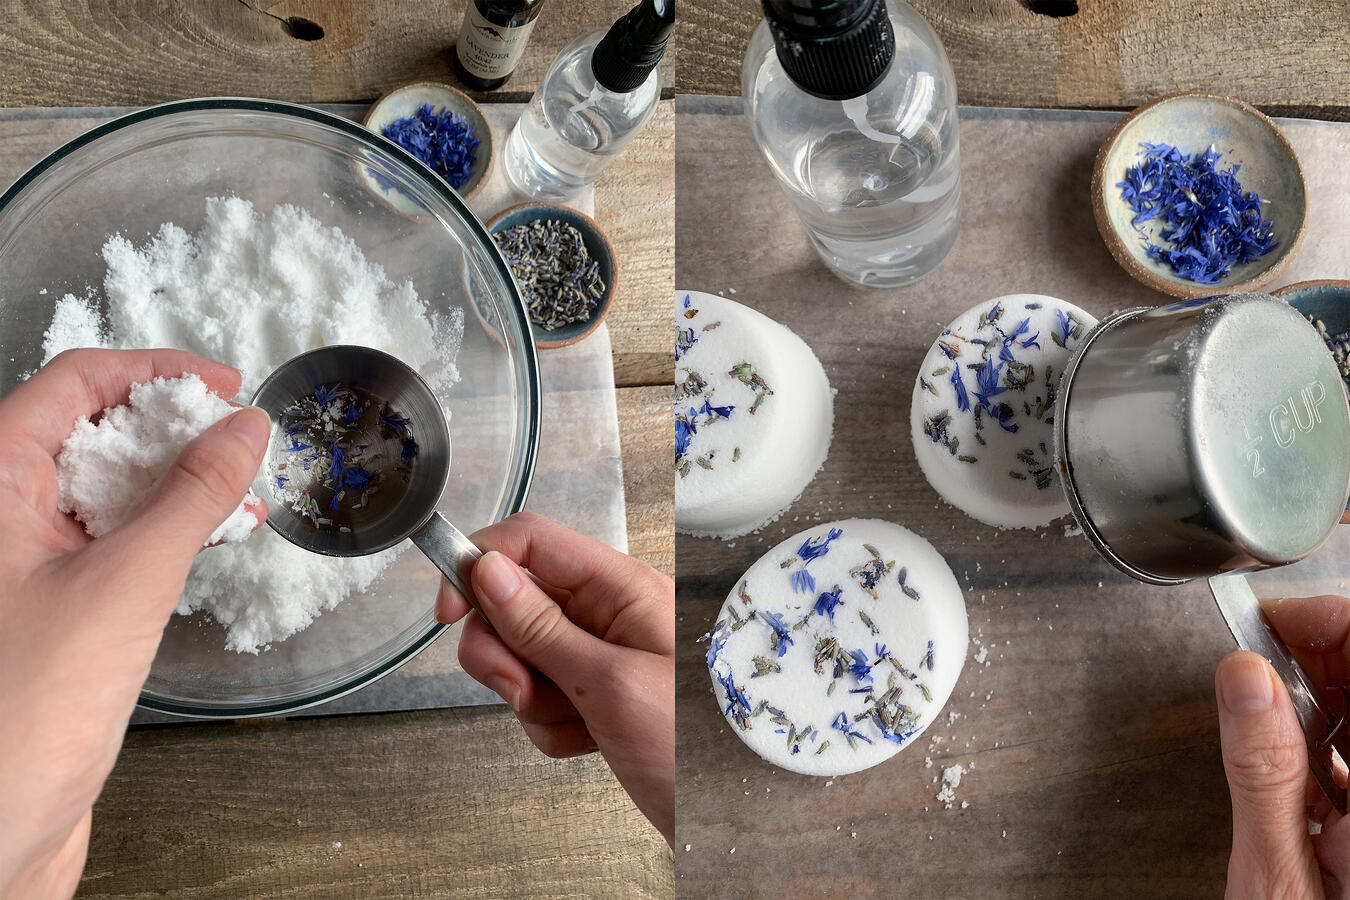 A person making lavender bath bombs, mixing the ingredients in a bowl, forming the bath bombs with a measuring cup, with fresh lavender sprinkled on top